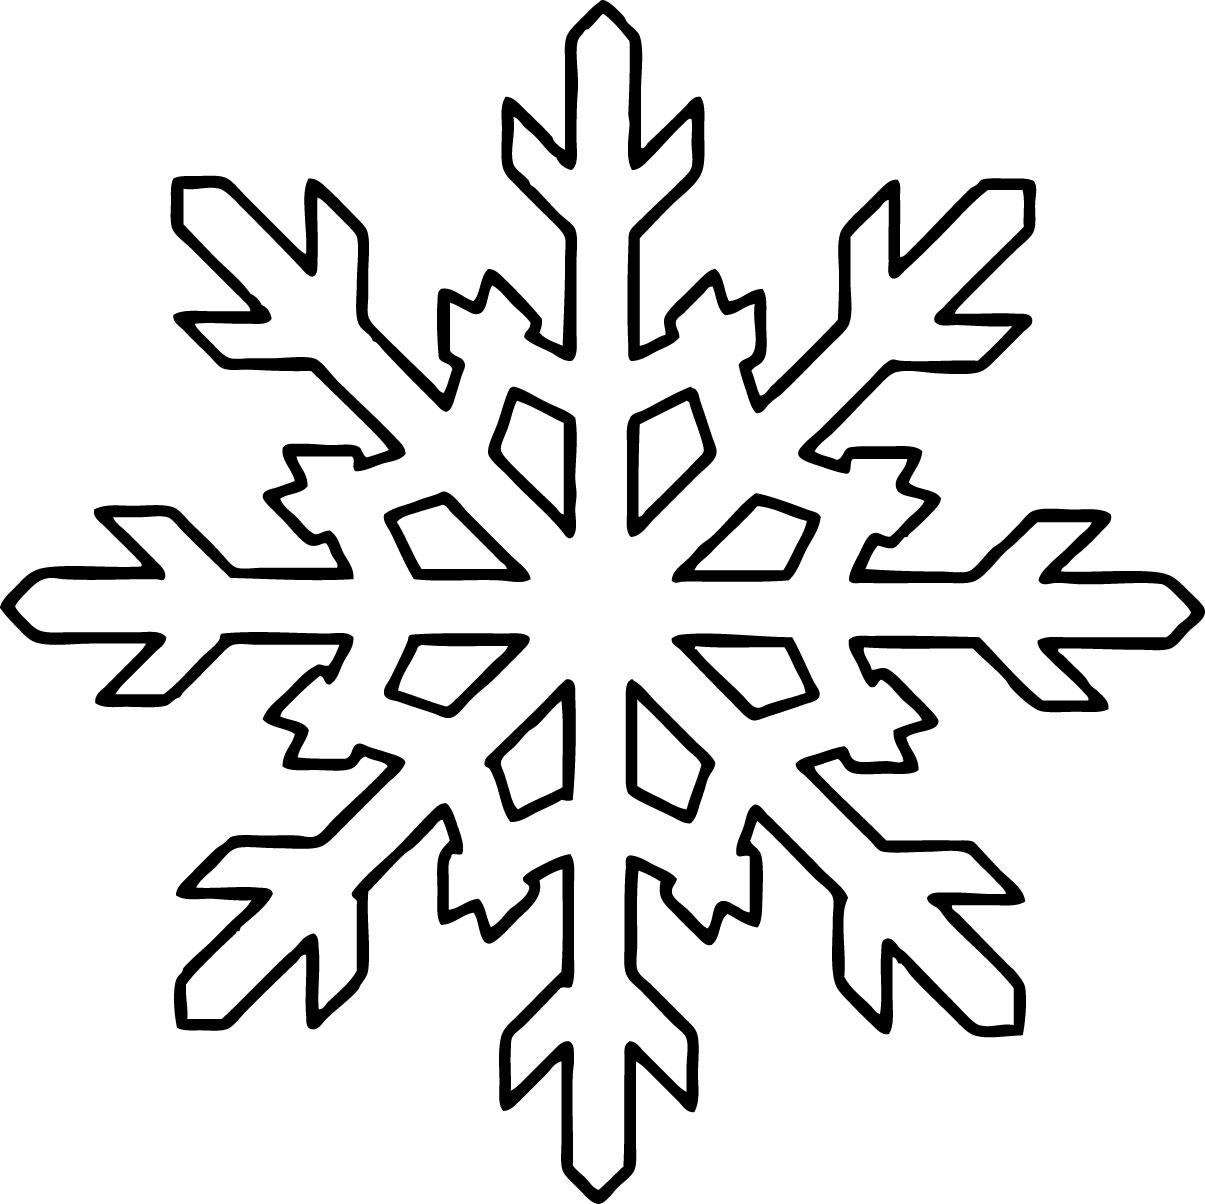 snowflakes coloring page free printable snowflake coloring pages for kids page snowflakes coloring 1 1